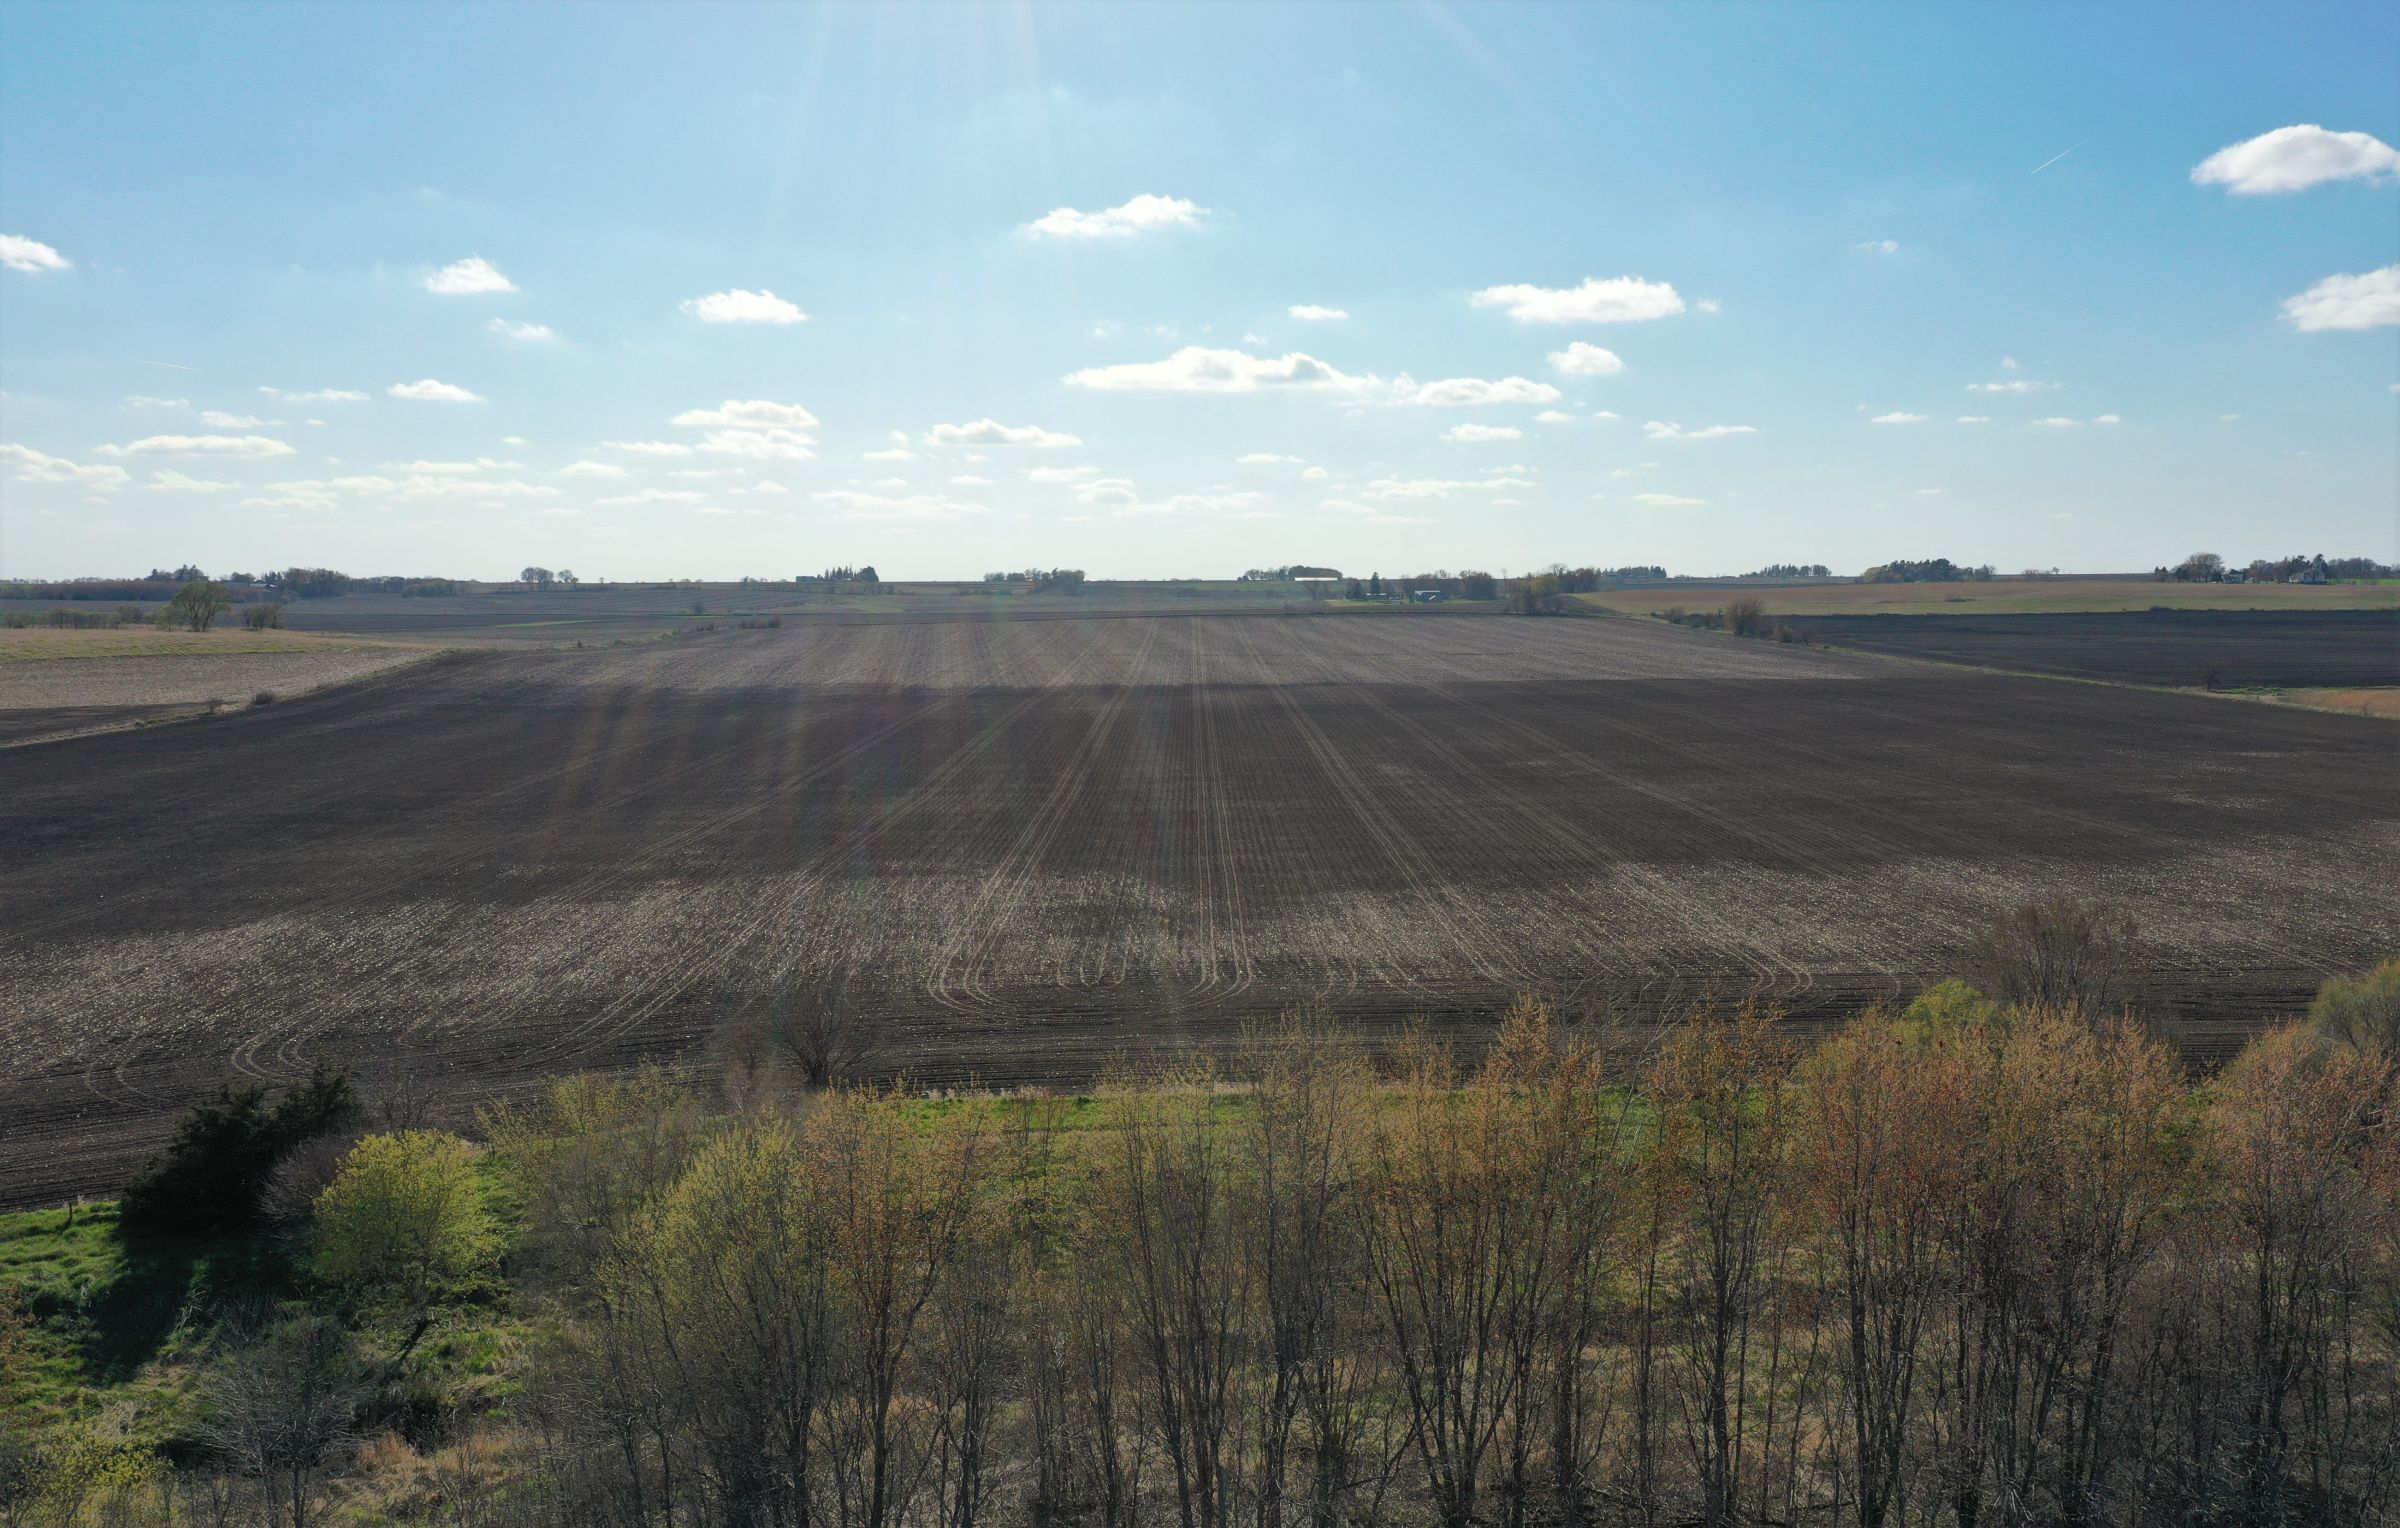 floyd-county-iowa-80-acres-listing-number-15487-2-2021-04-26-011846.JPG